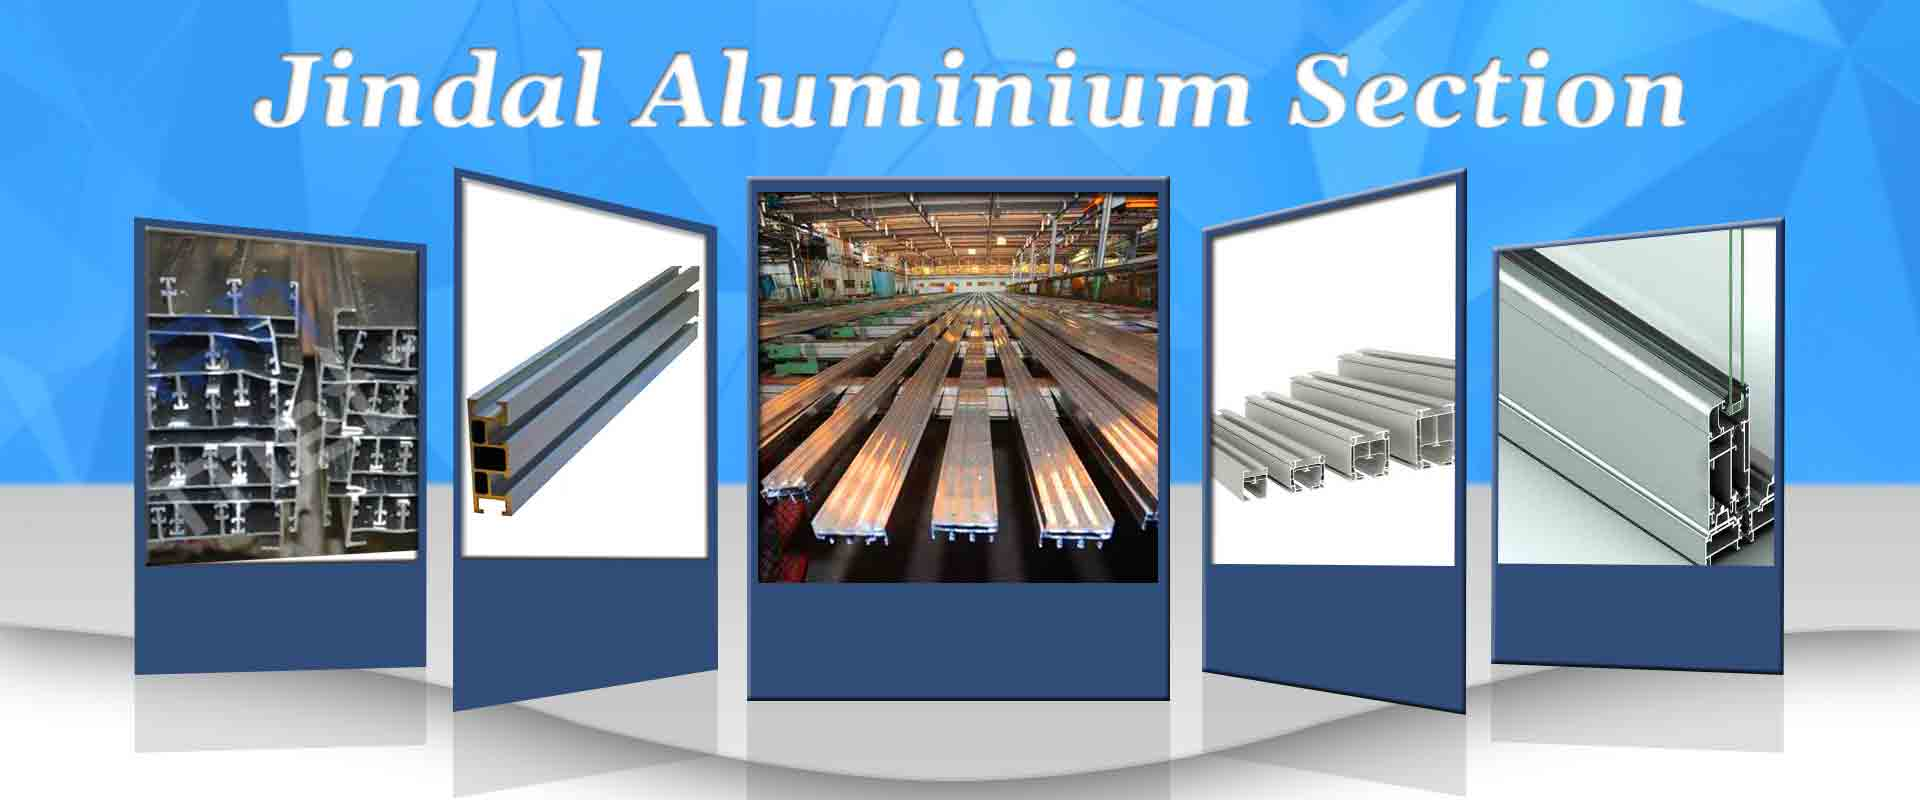 Jindal Aluminuim Section